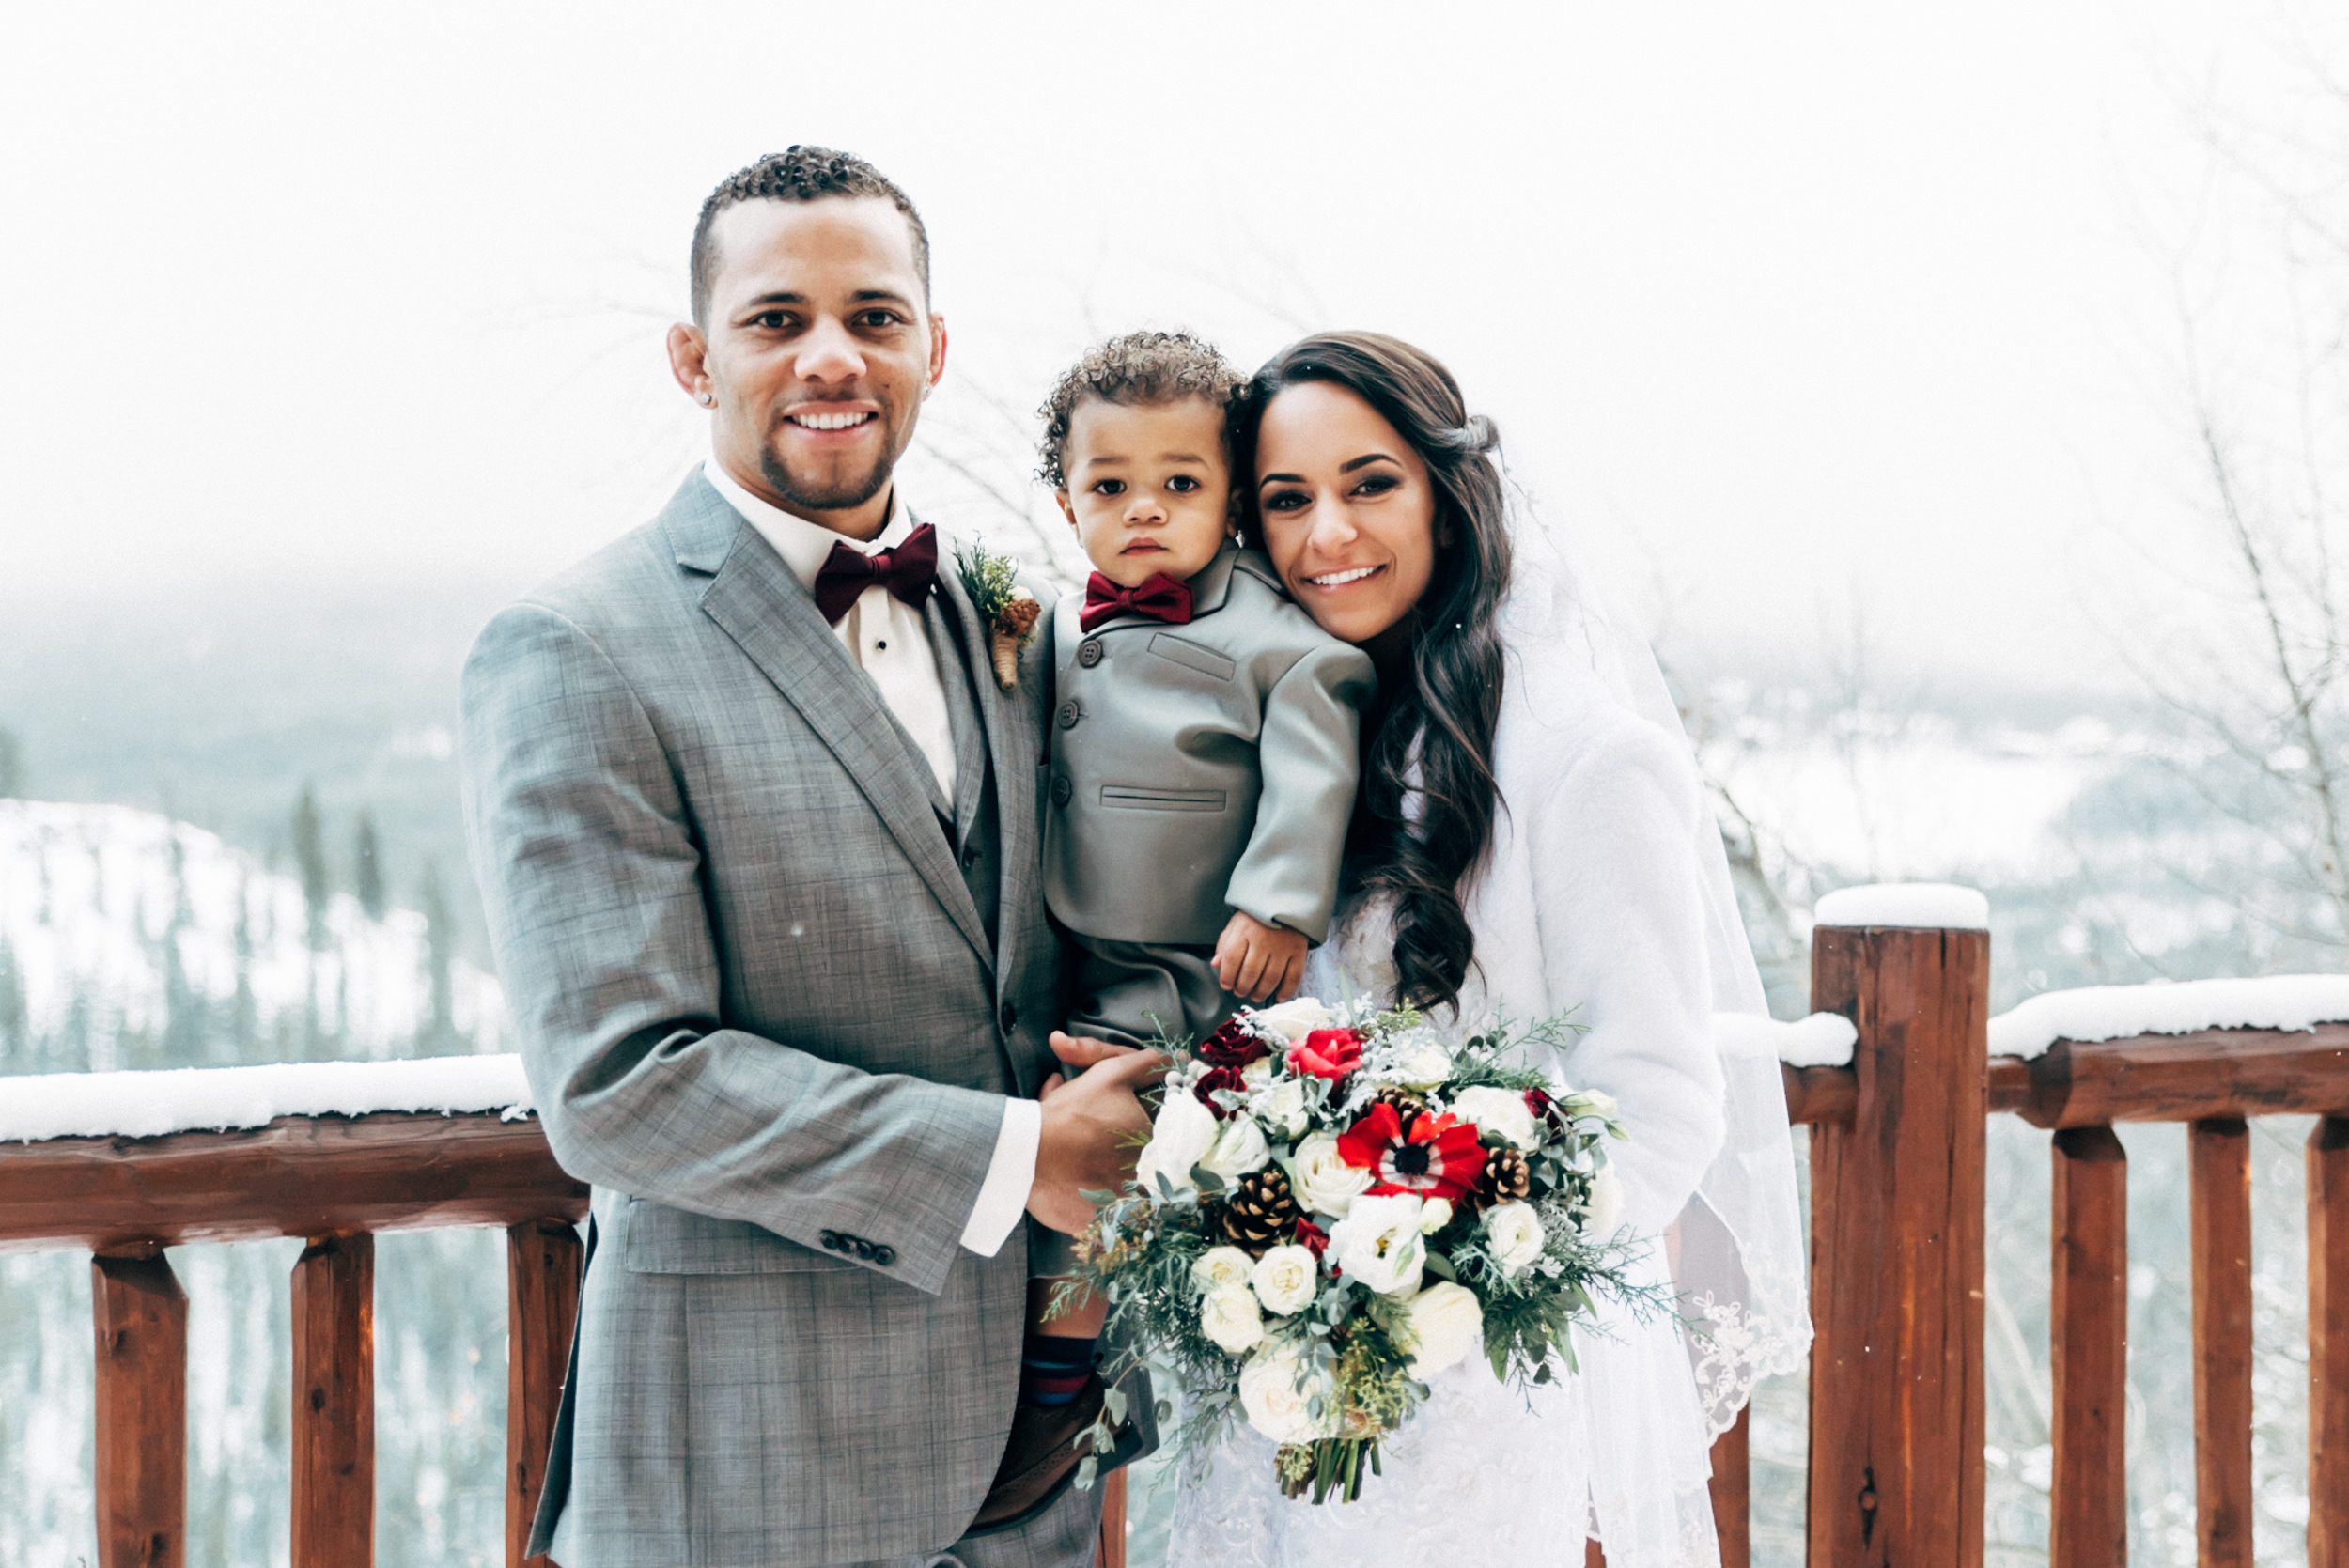 Family portrait in a winter wedding in Summit County Colorado.